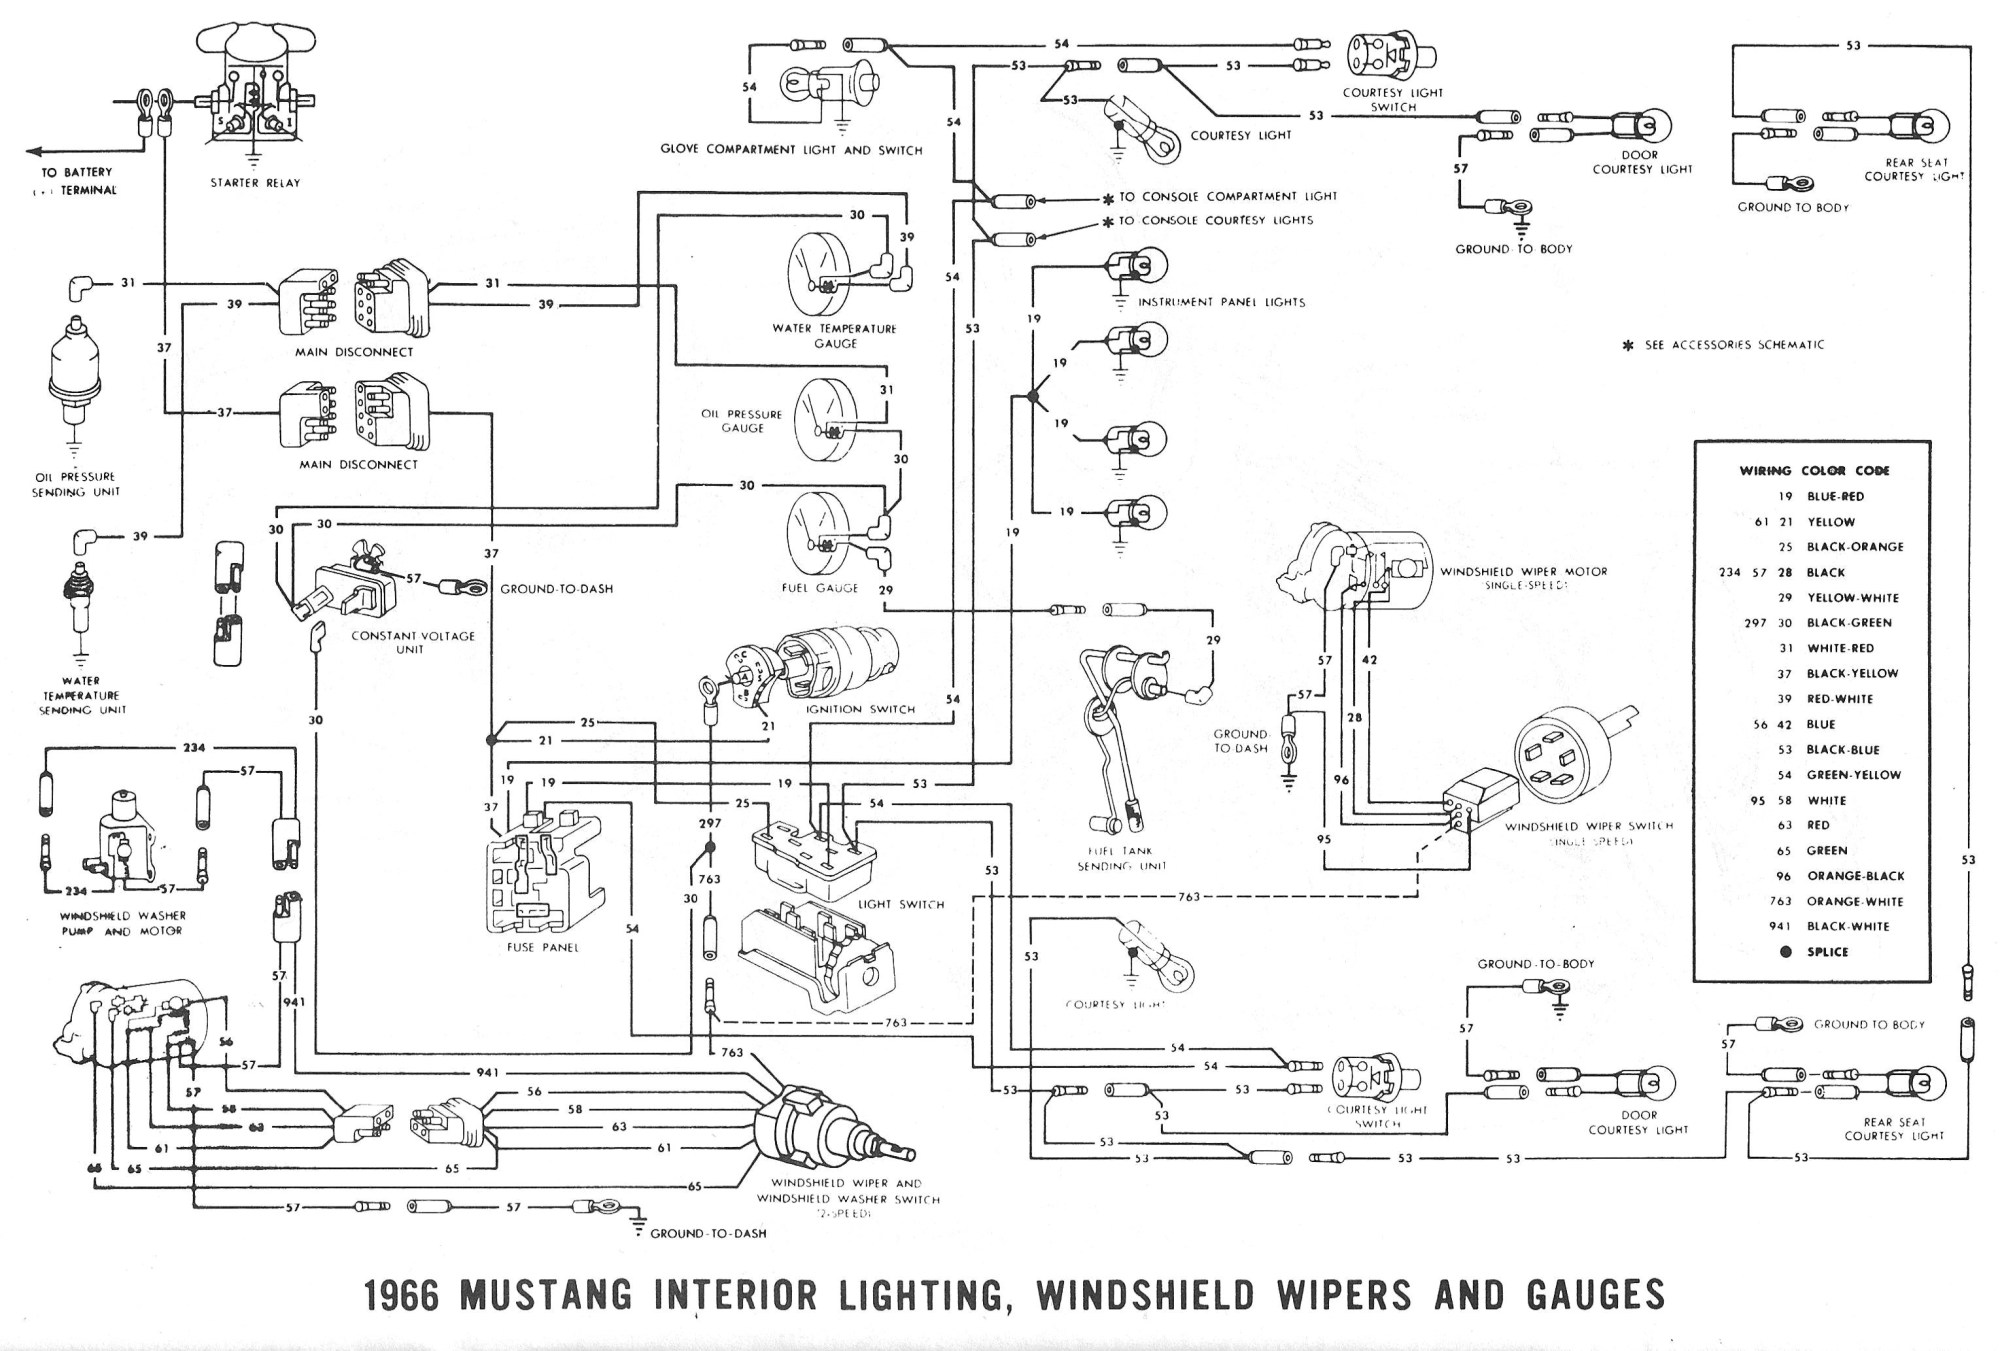 hight resolution of sprague wiper motor wiring diagram wiring library 6566 1spd wwmud mustang windshield wiper motor switch wiring